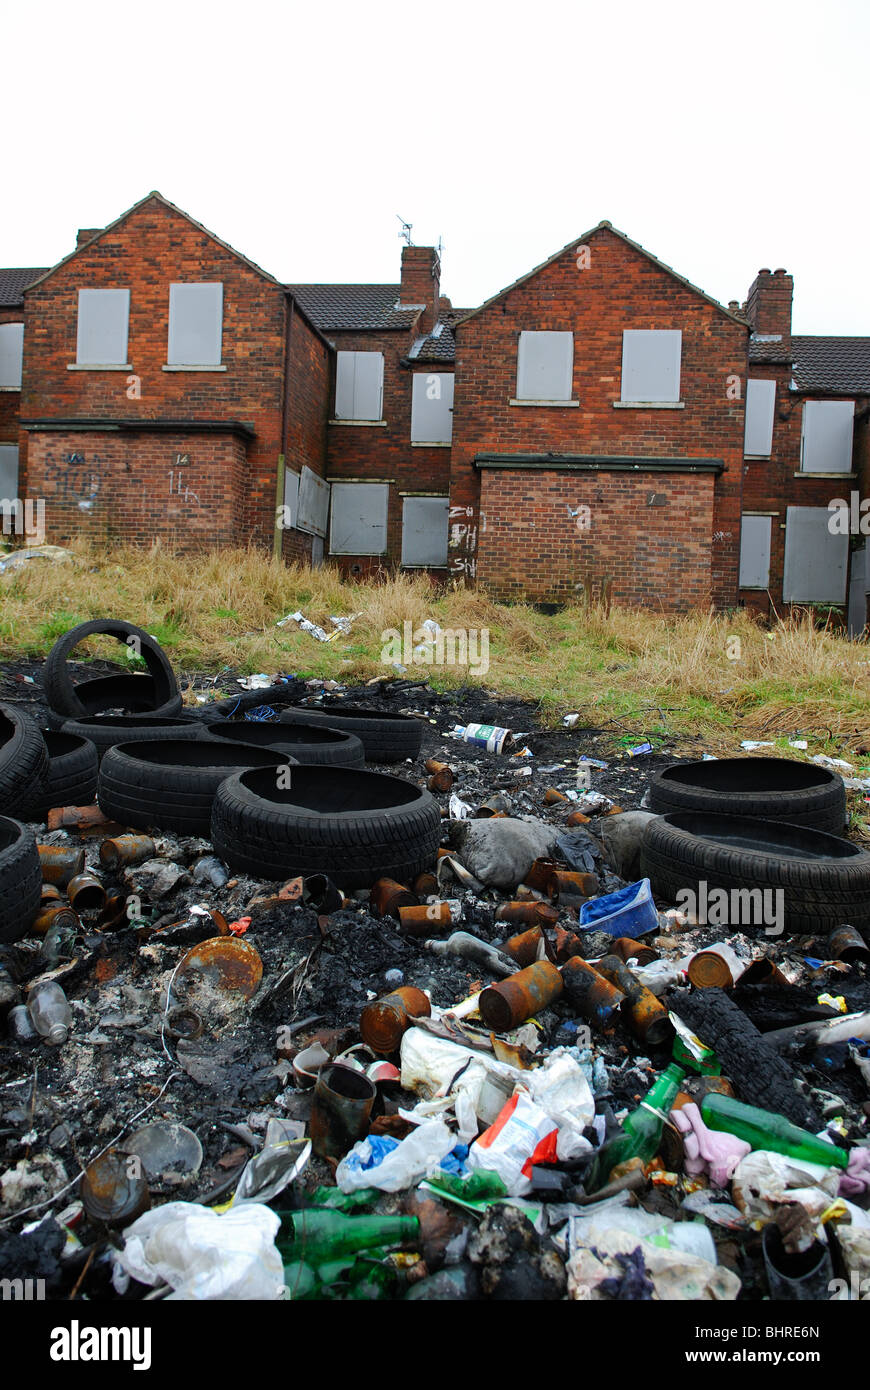 Pleasley Mansfield Nottinghamshire England.Run Down Council Estate. - Stock Image